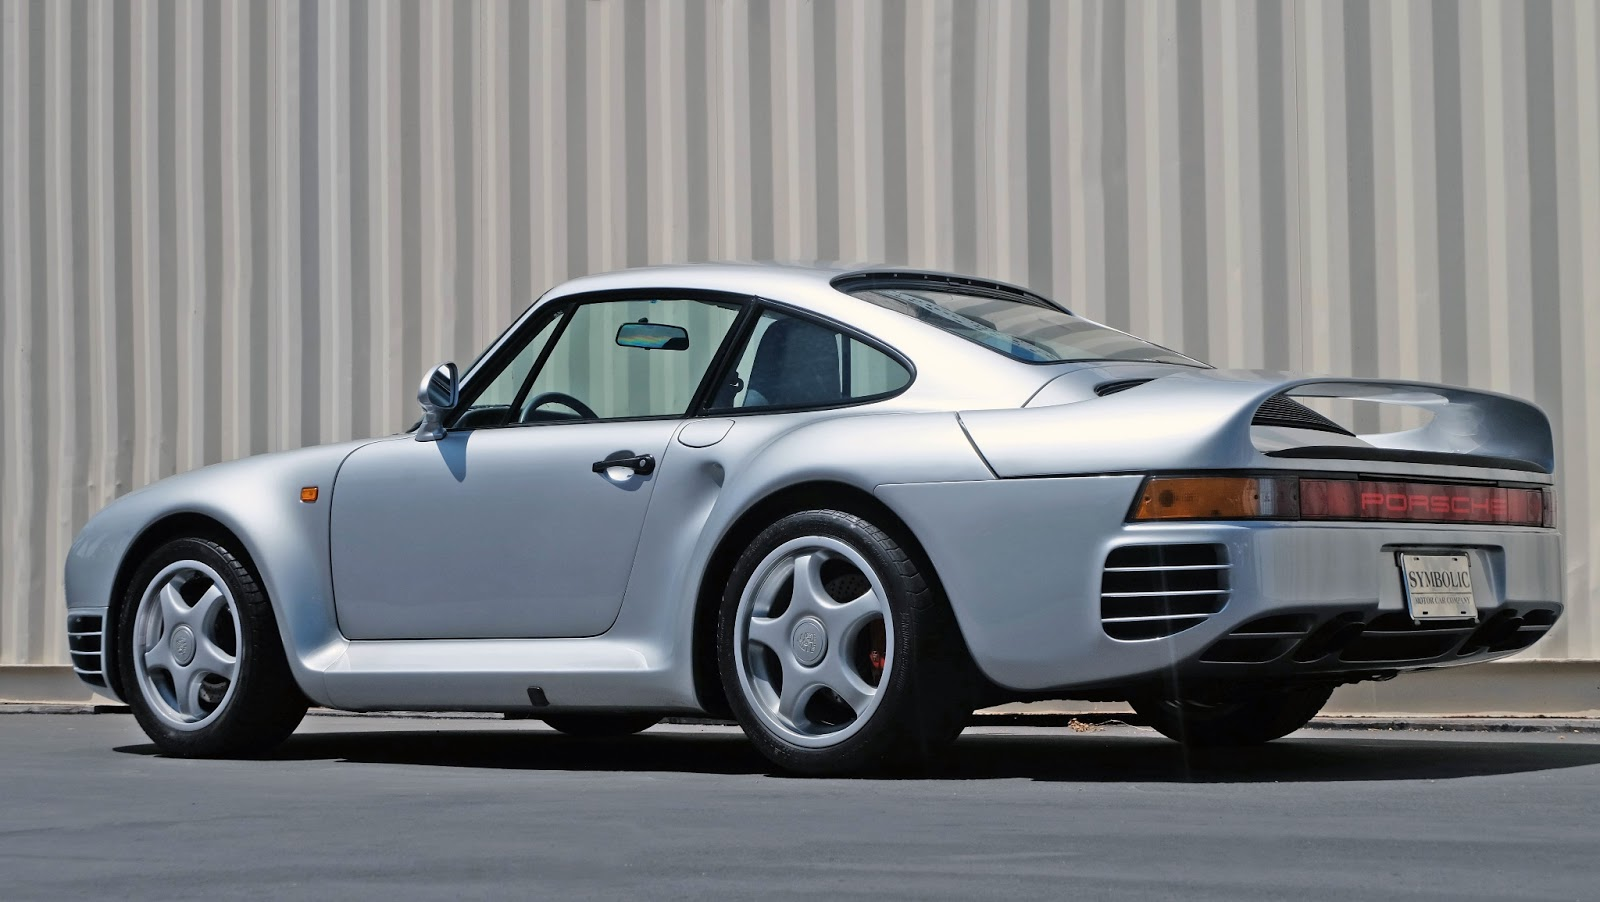 Audi 0 60 >> Porsche 959 With Over $100,000 In Maintenance Likely To Fetch Over $800k In Online Auction